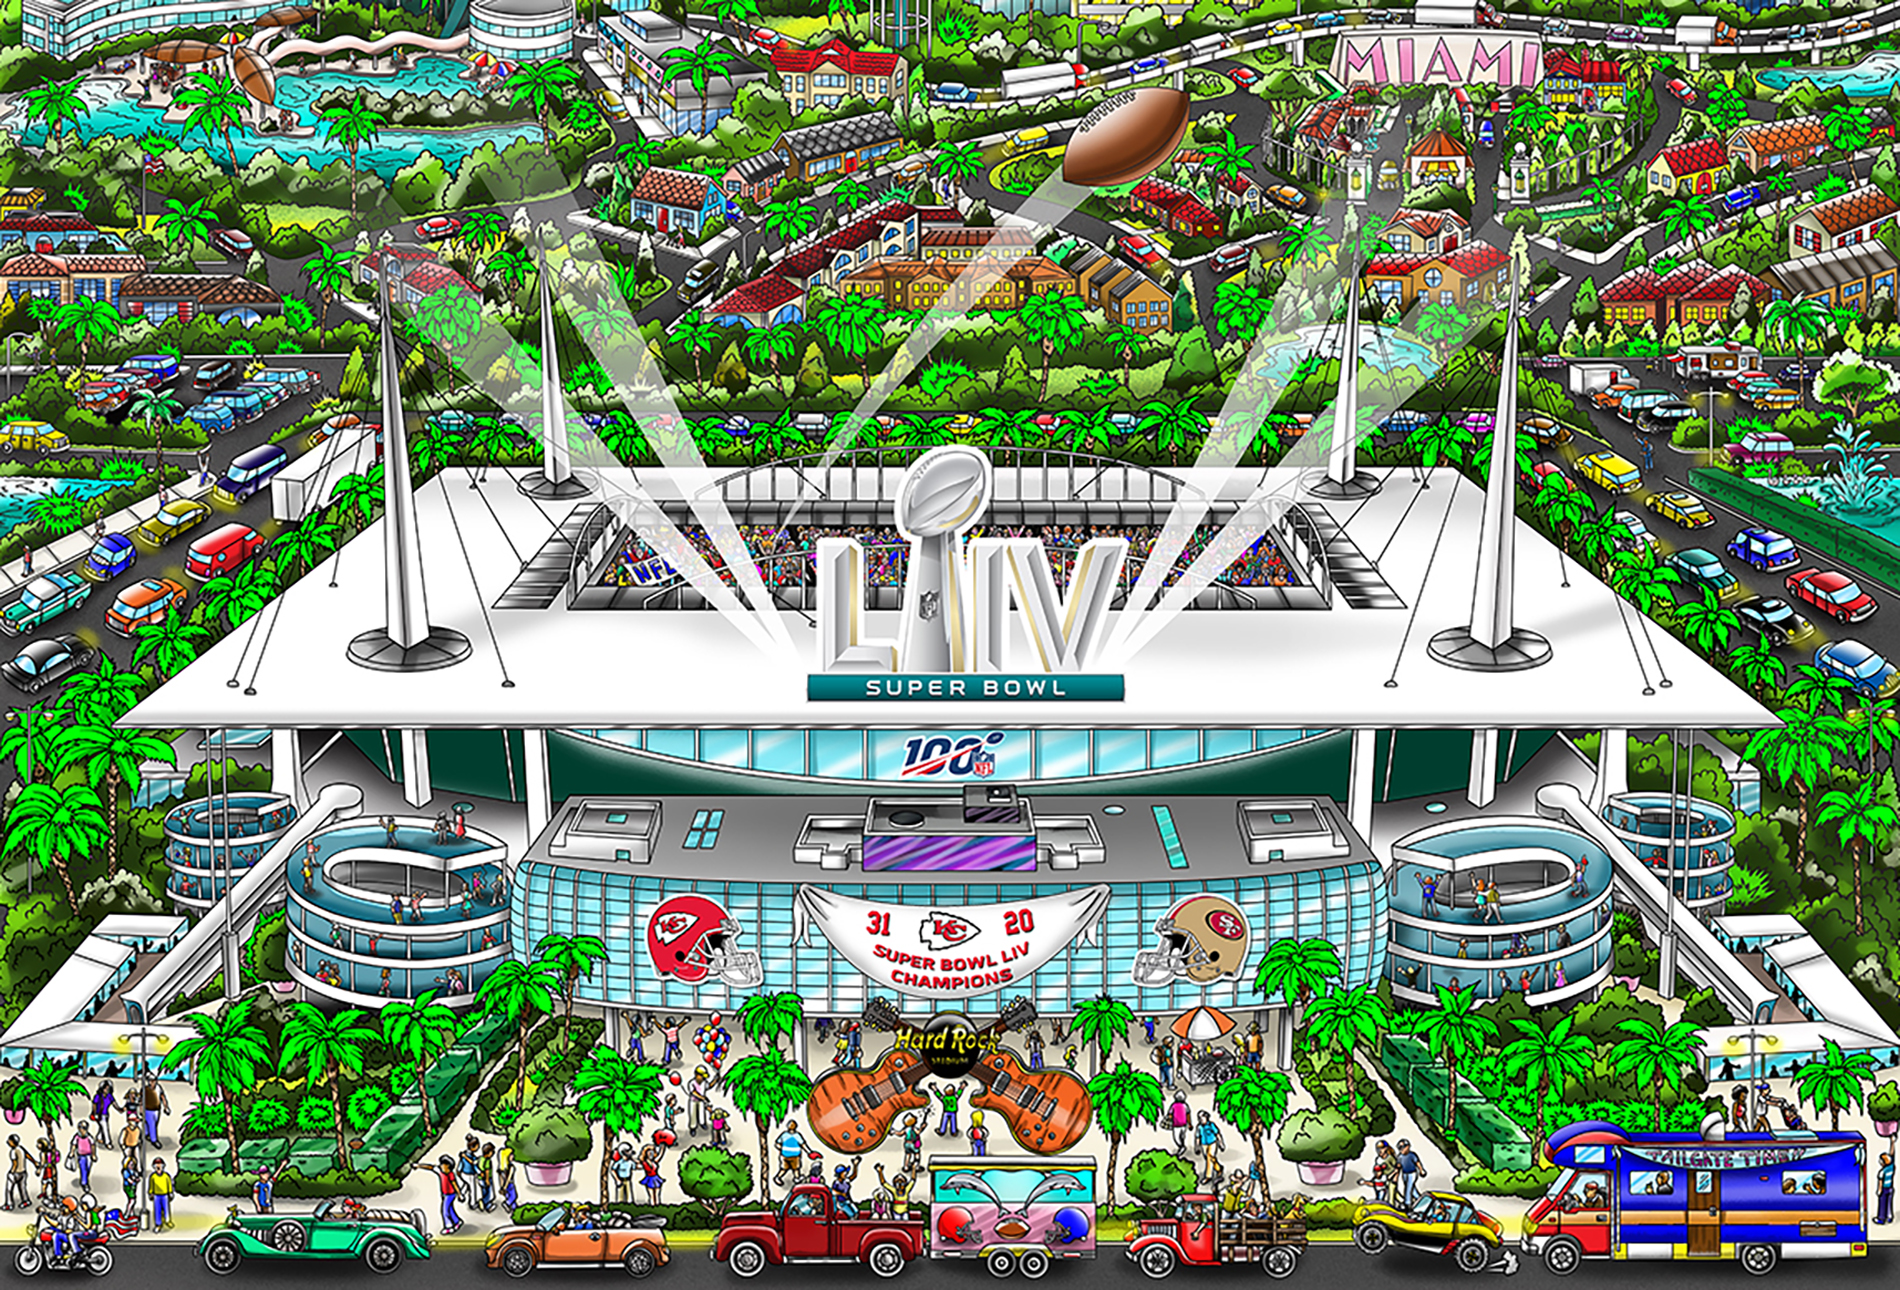 A poster featuring the LIV Super Bowl football stadium, surrounding Miami, and final scores.